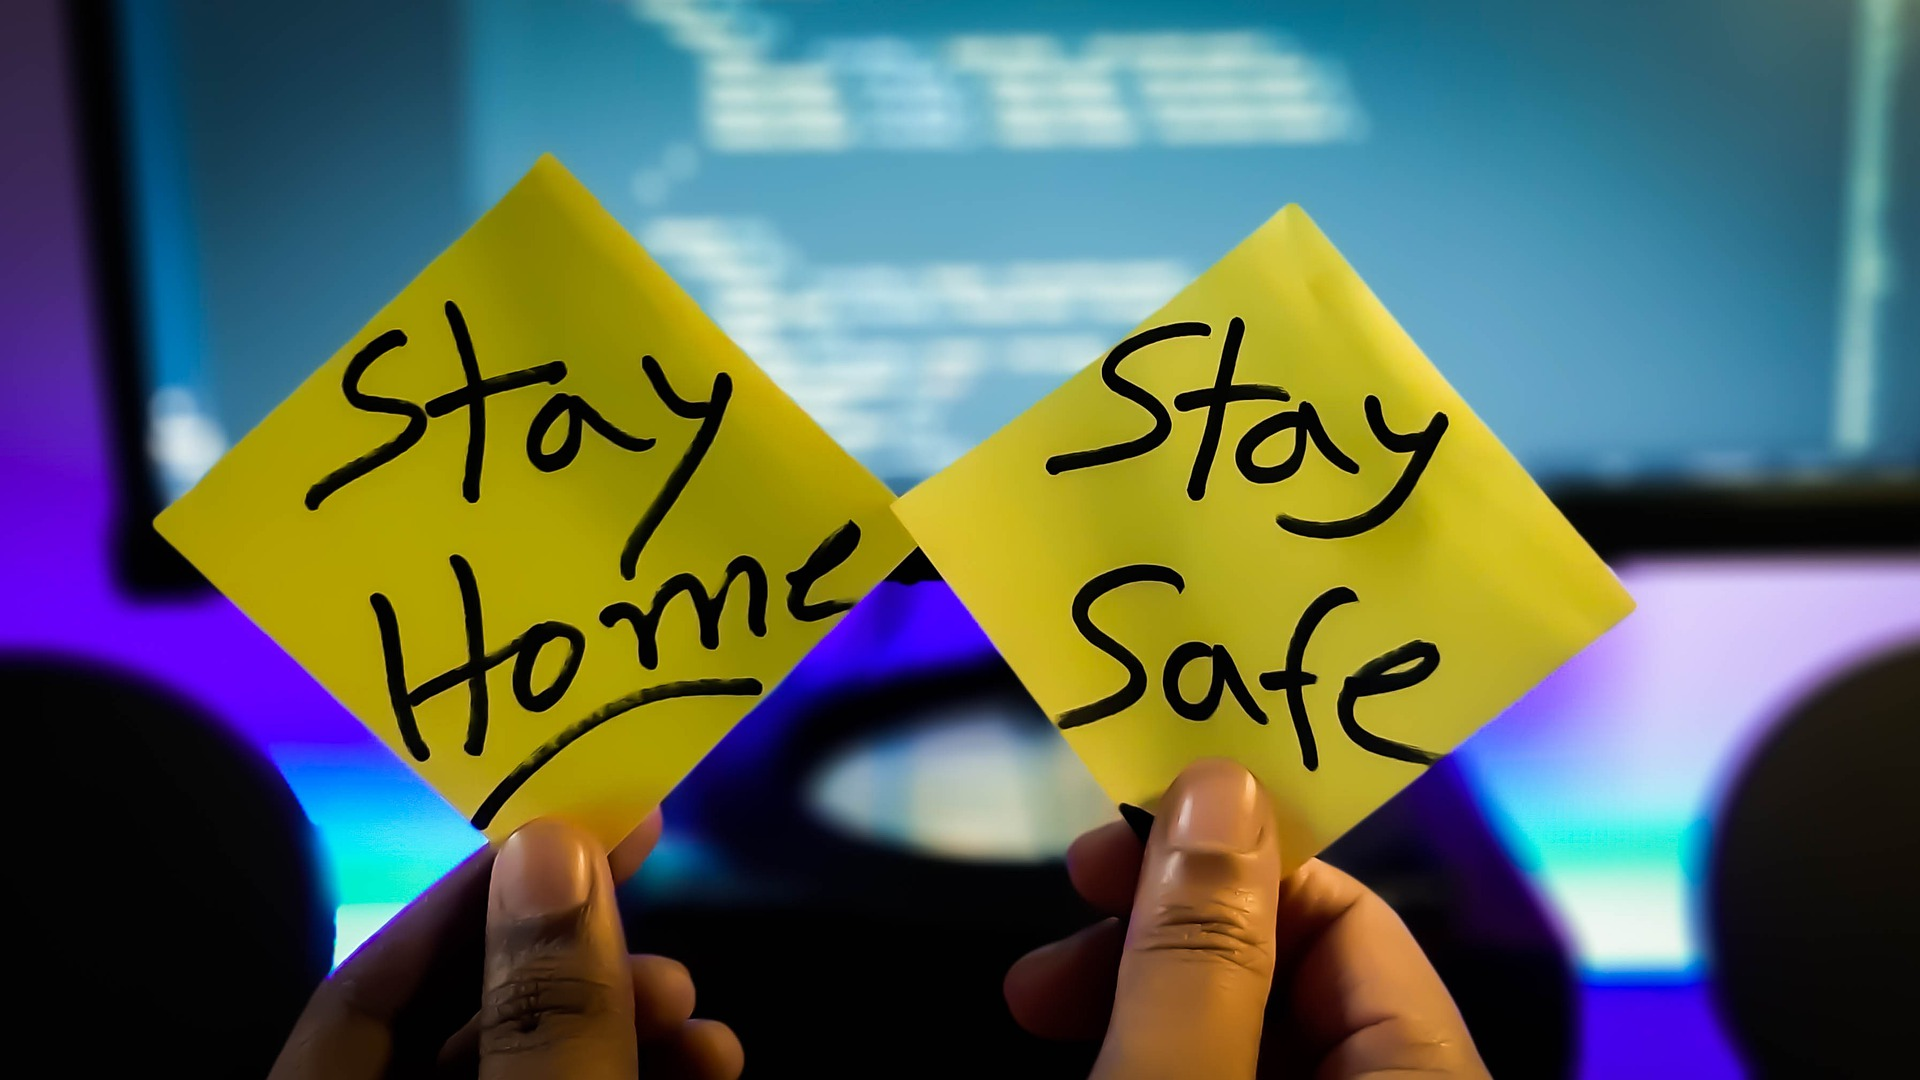 stay at home stay safe share with friends and family